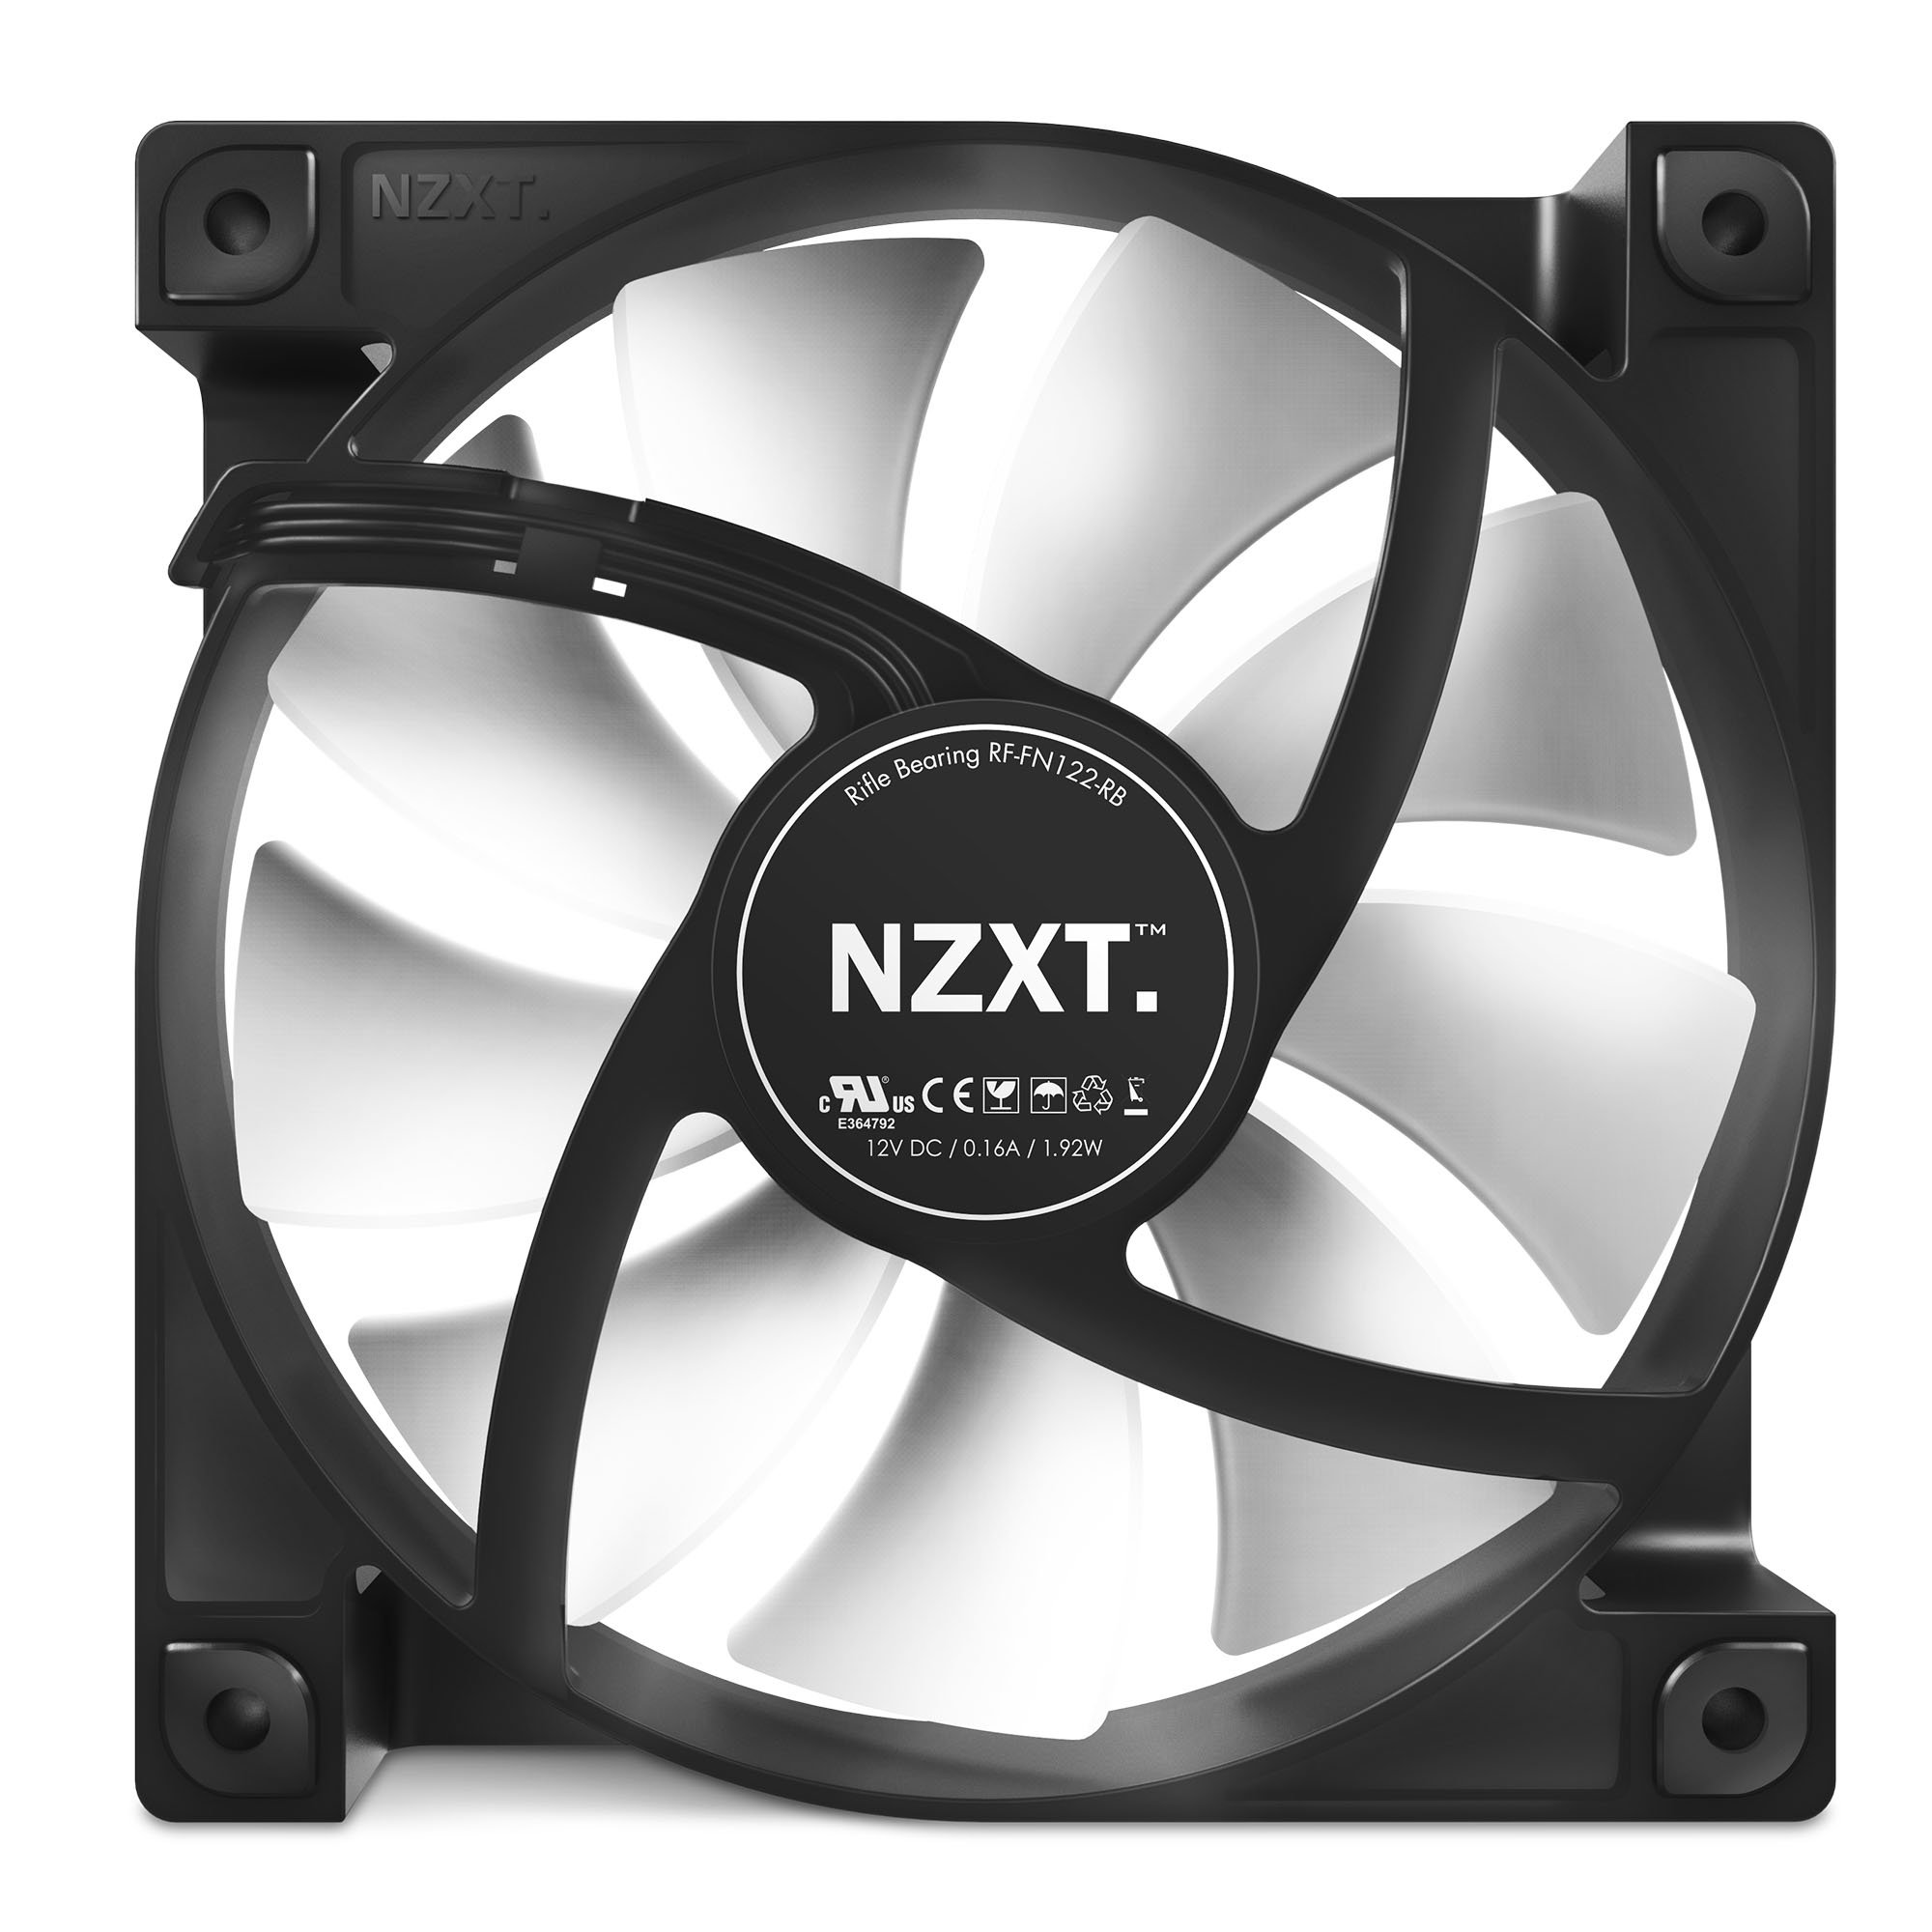 Nzxt Fn V2 120mm Performance Case Fan Cooling Rf Fn122 Rb Amazon Sg Electronics